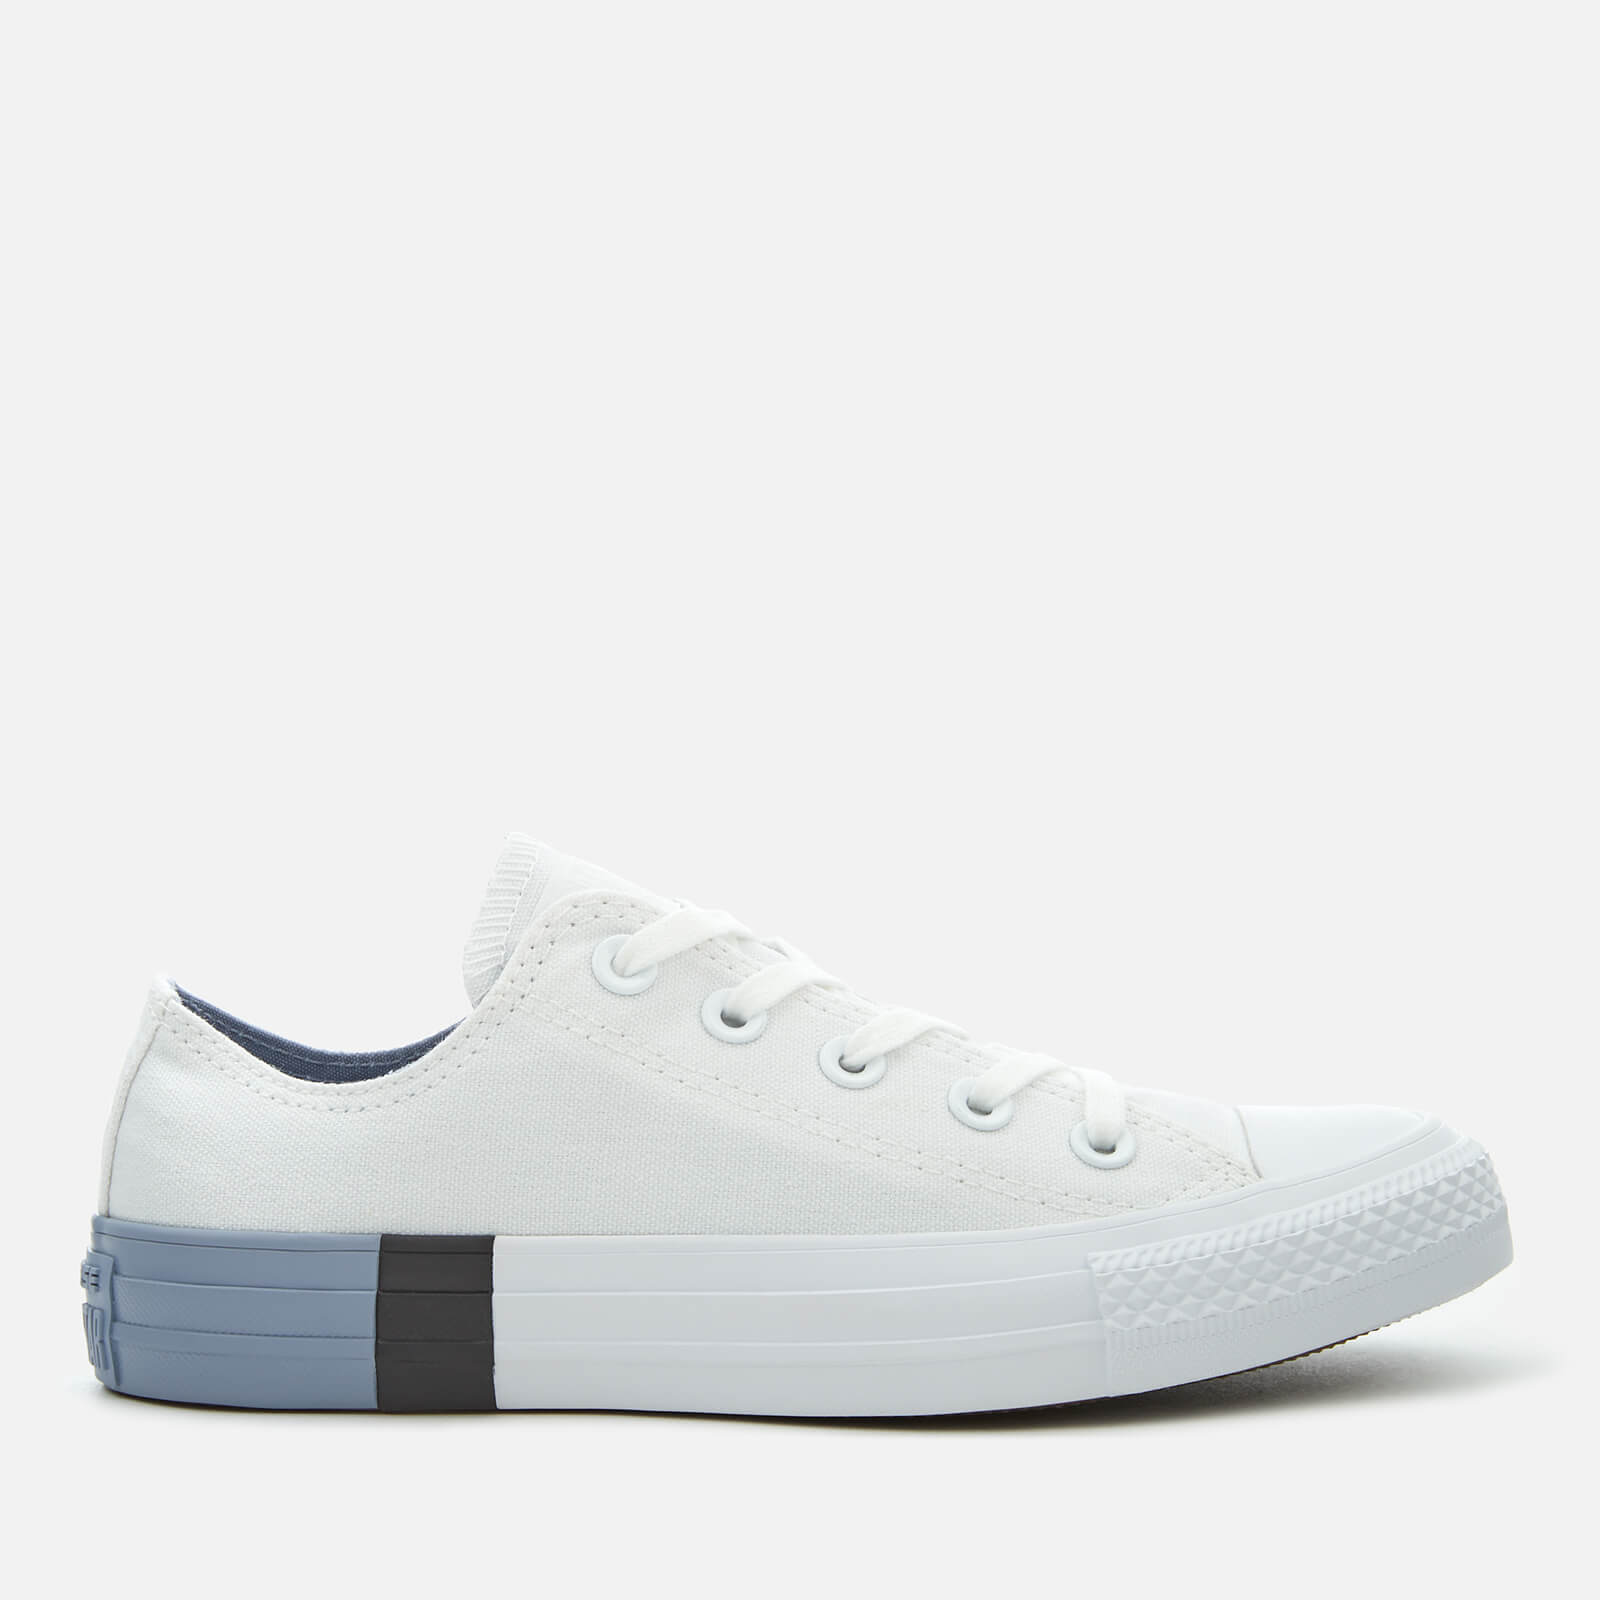 Converse Women's Chuck Taylor All Star Ox Trainers WhiteGlacier Grey